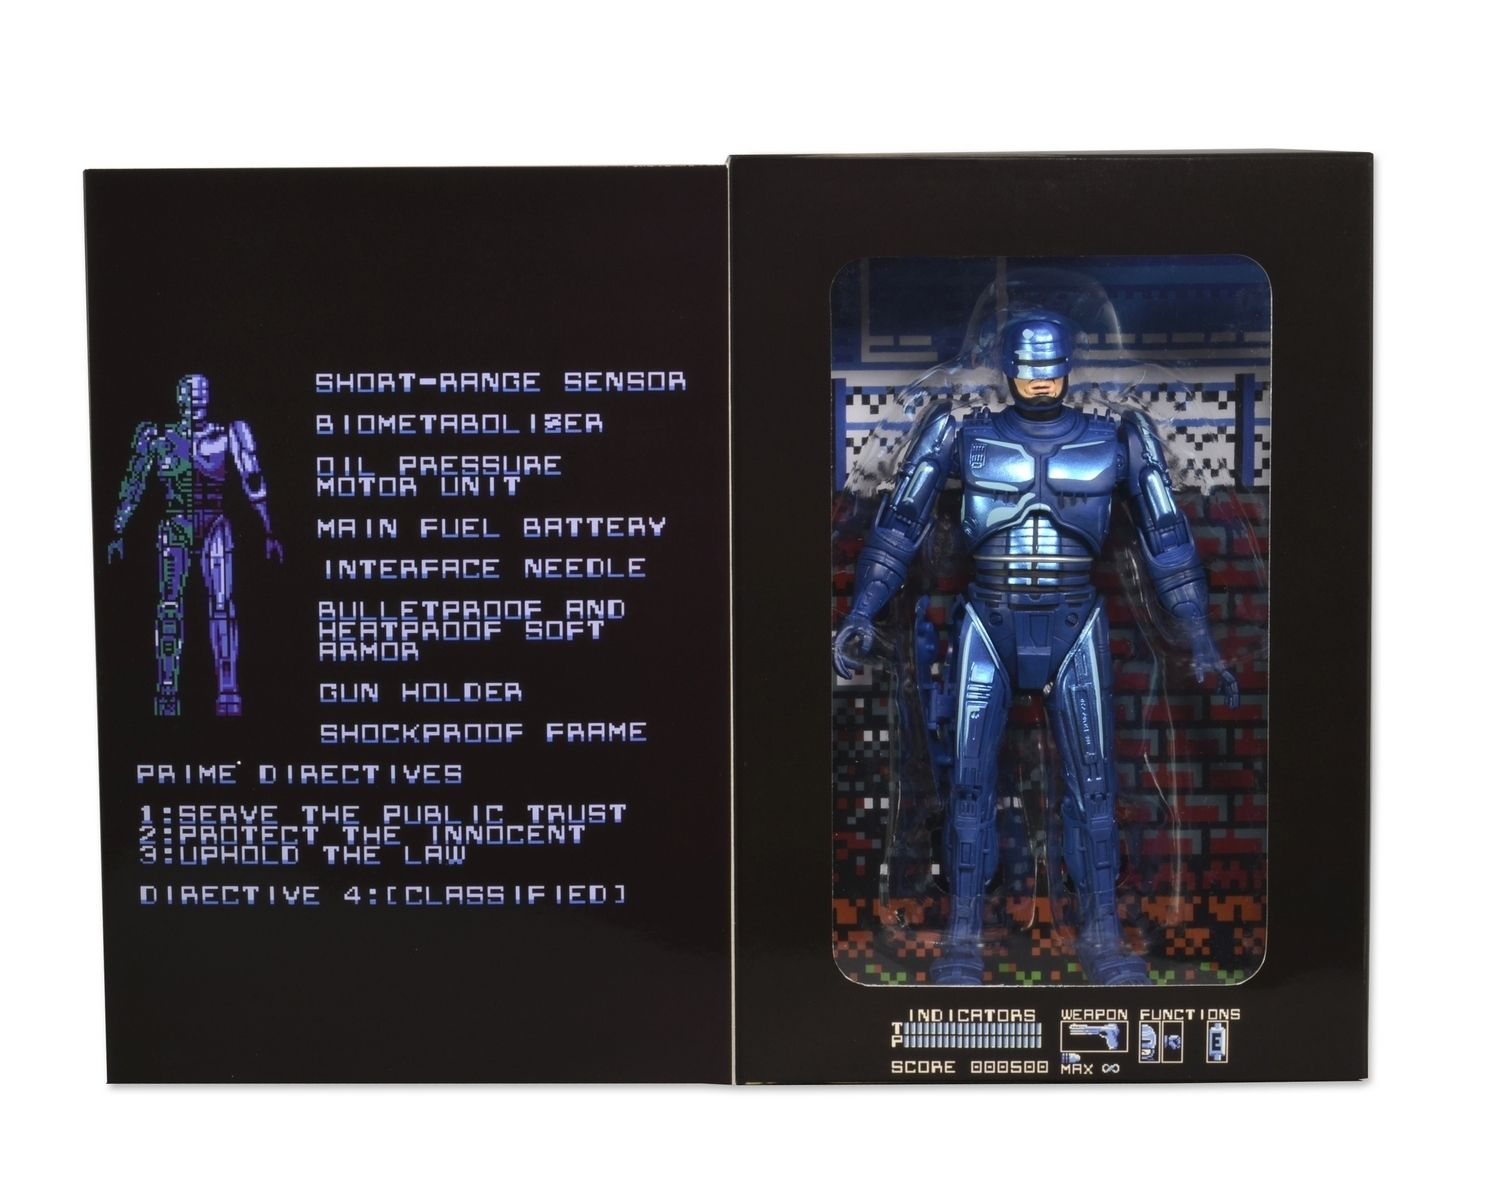 NECA Robocop Classic 1987 Video Game Appearance PVC Action Figure Collectible Model Toy 7 18cm KT3129NECA Robocop Classic 1987 Video Game Appearance PVC Action Figure Collectible Model Toy 7 18cm KT3129